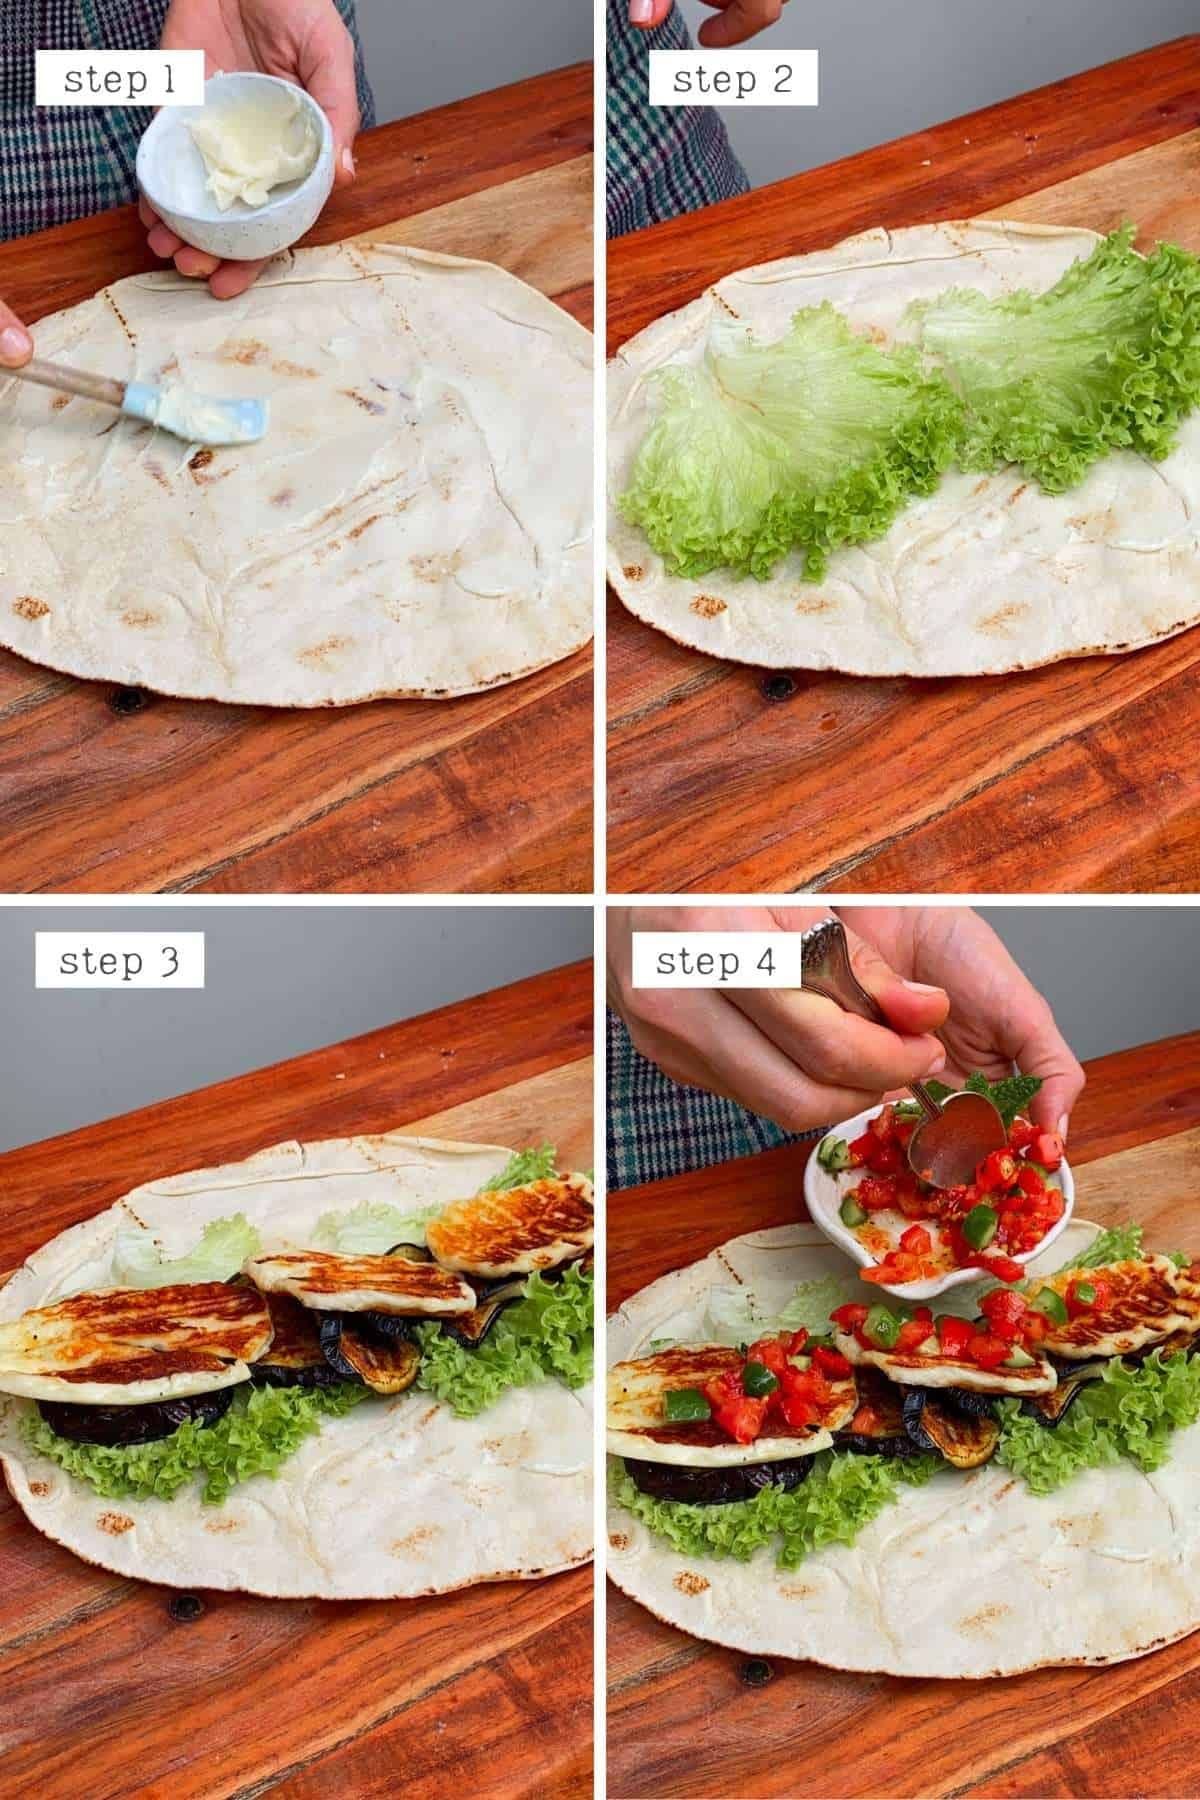 Steps for making a wrap